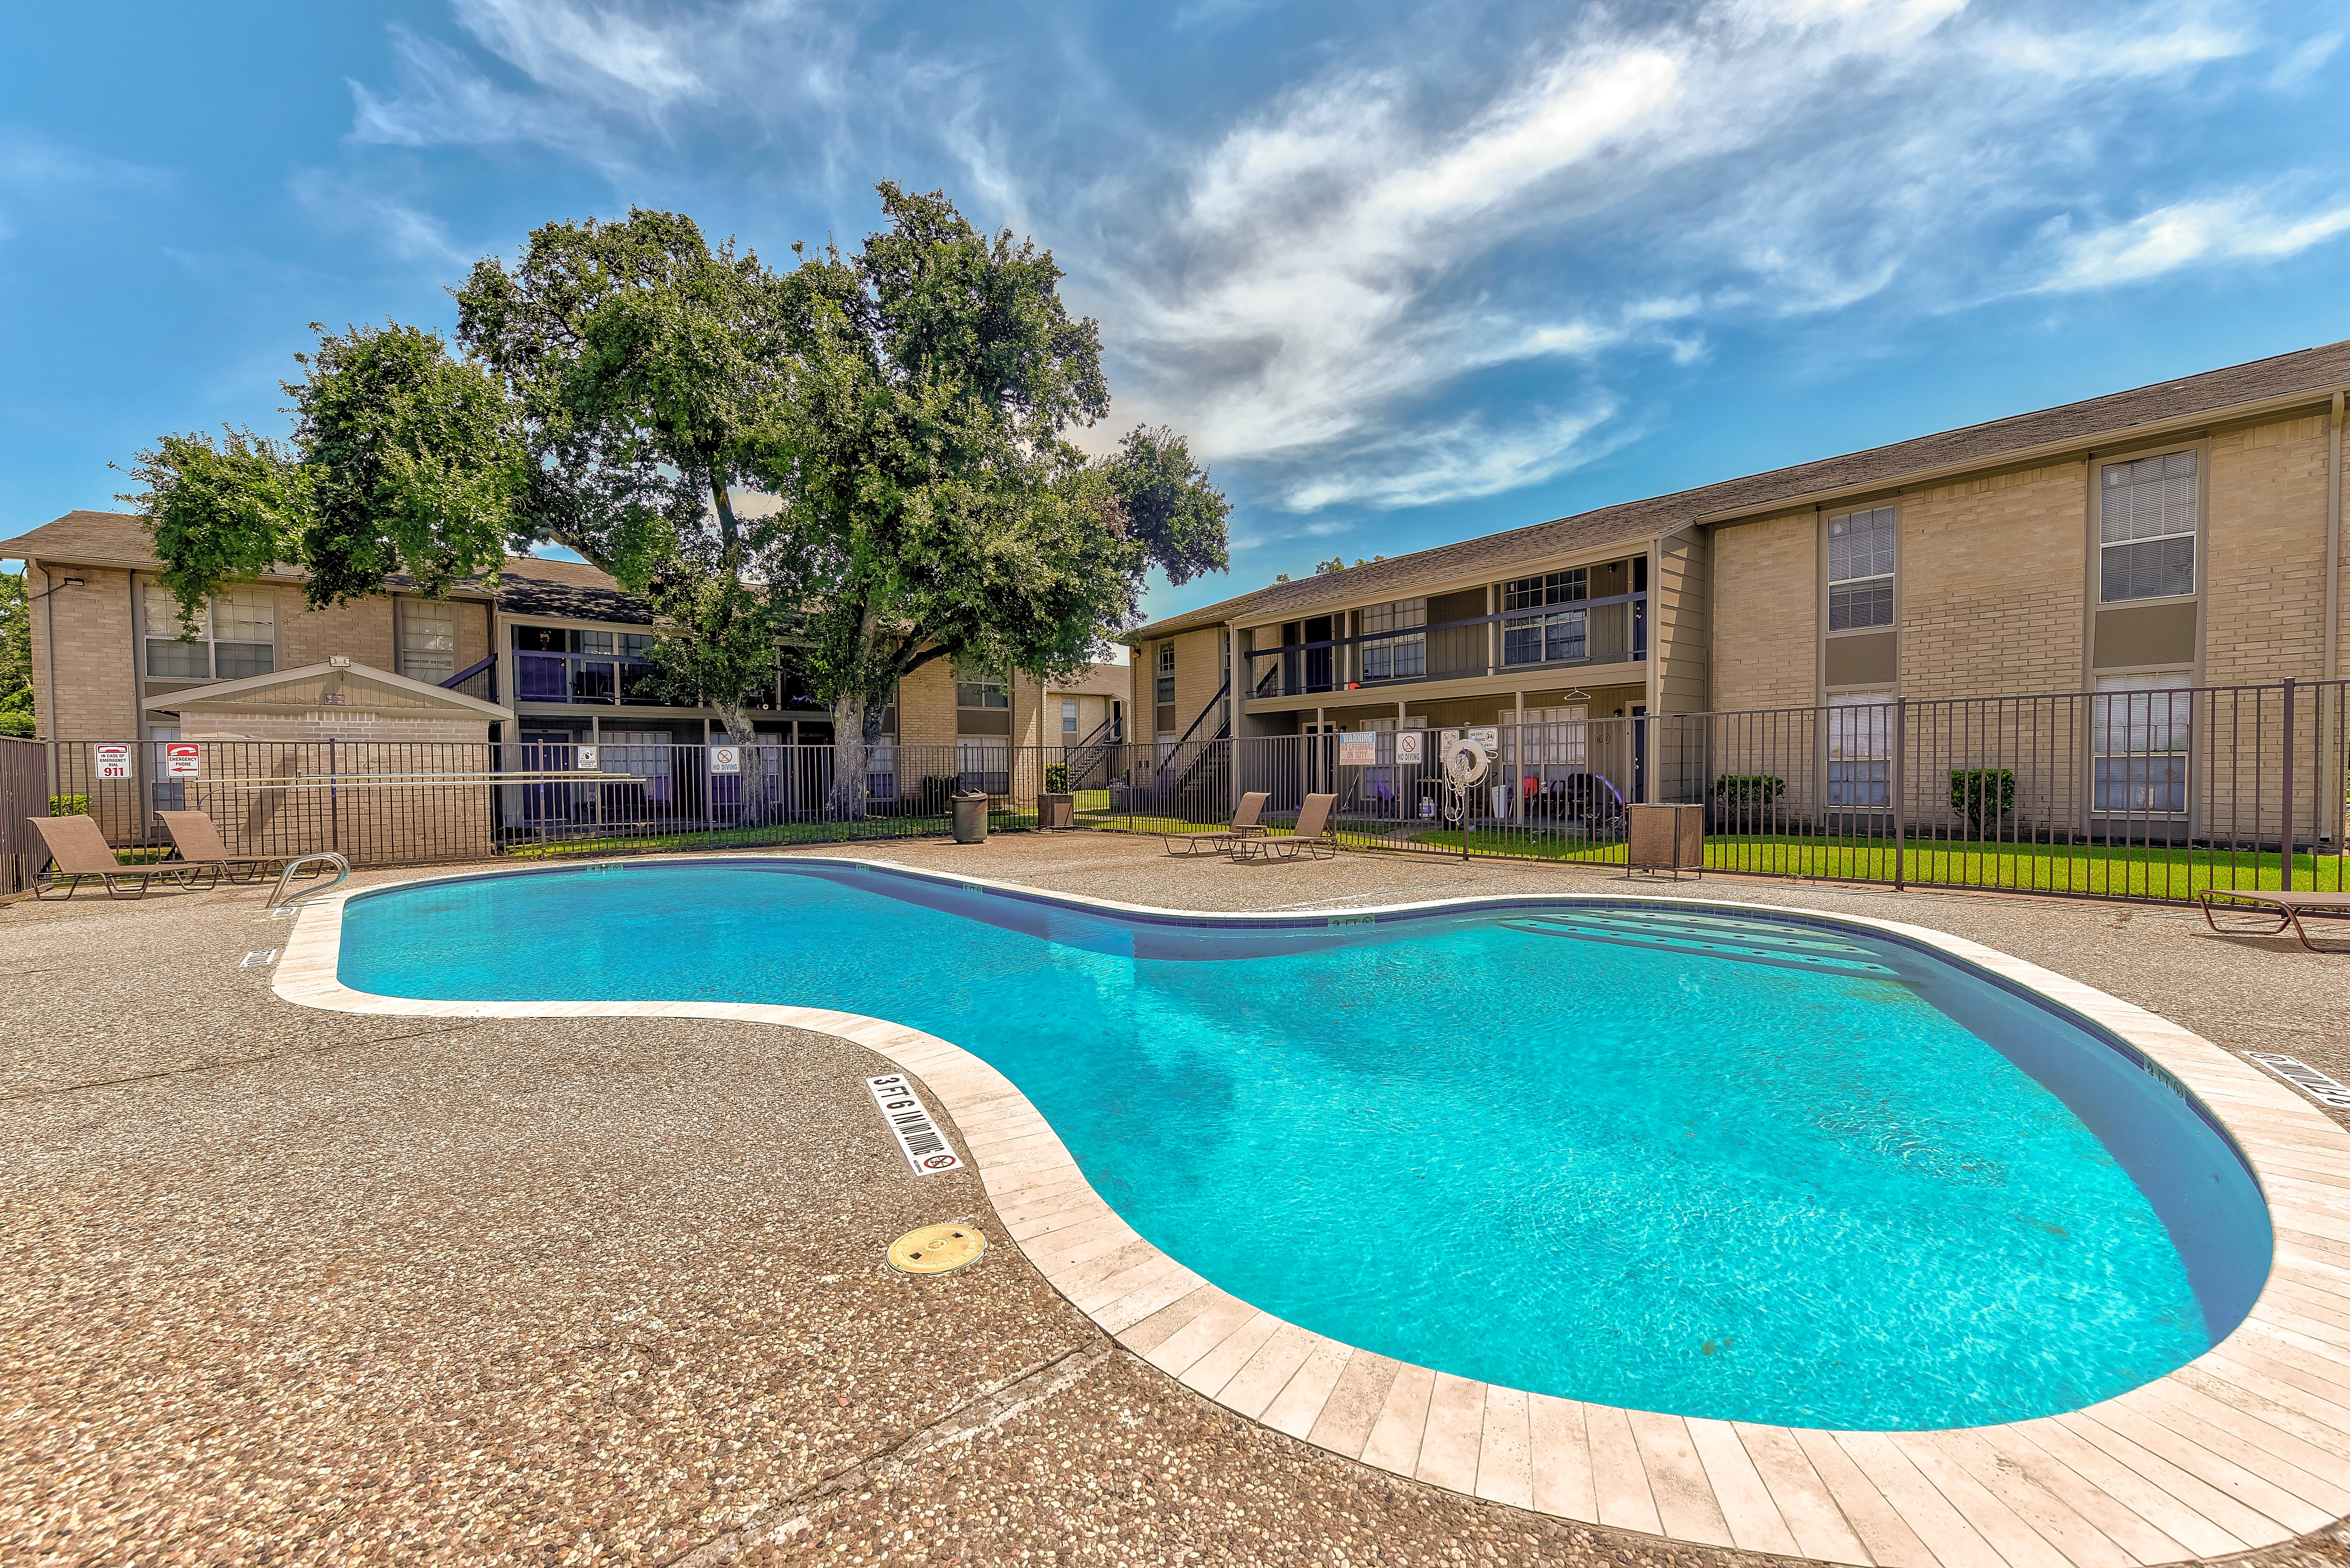 Apartments Near BC Vanderbilt Apartments for Brazosport College Students in Lake Jackson, TX